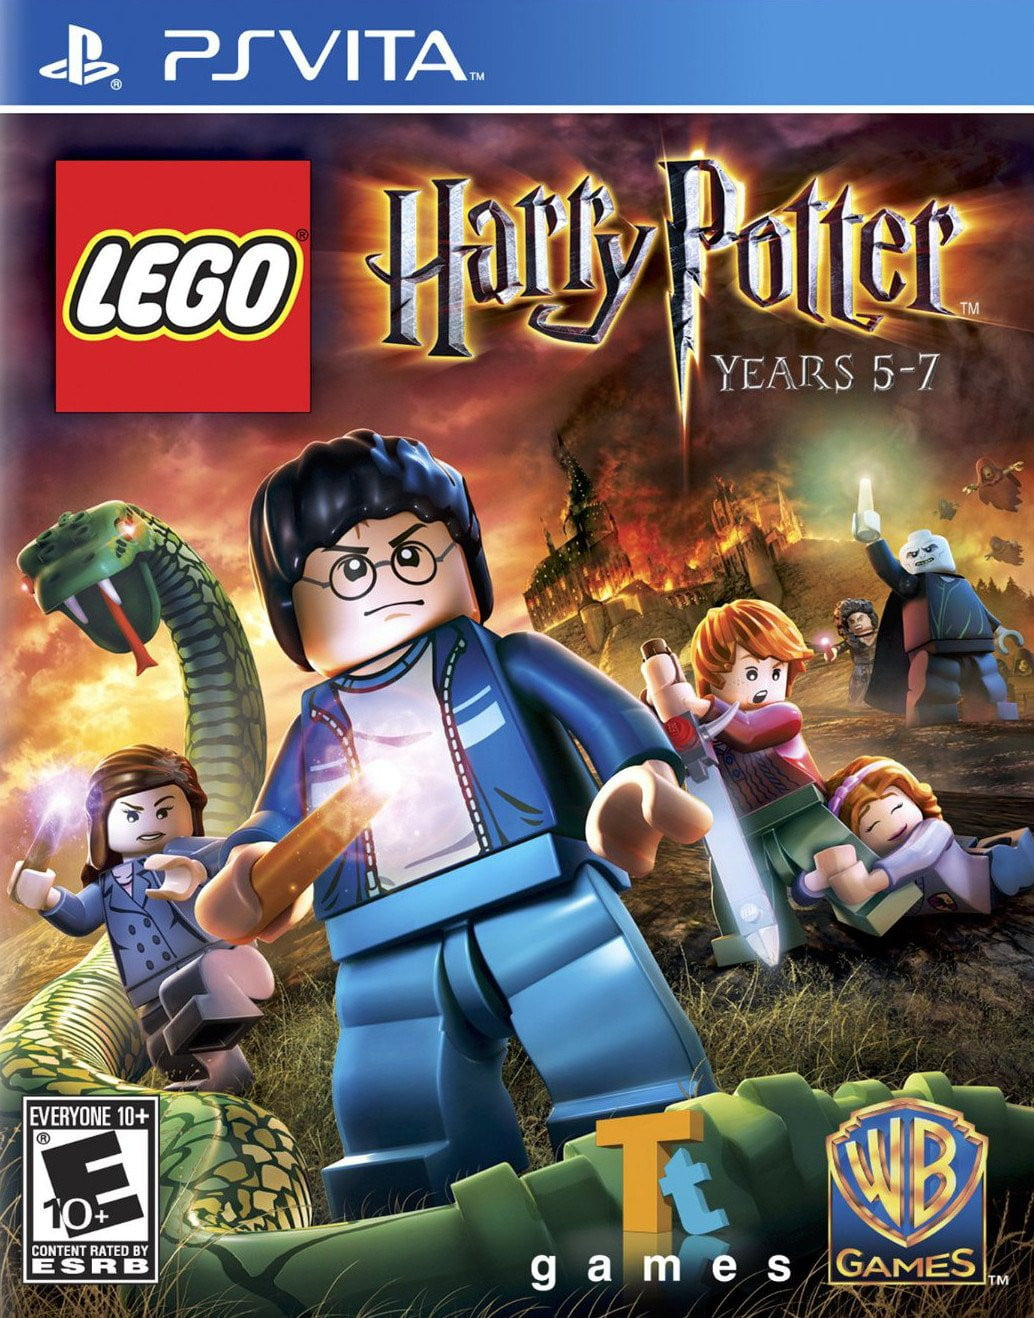 Lego Harry Potter - ShamyStores